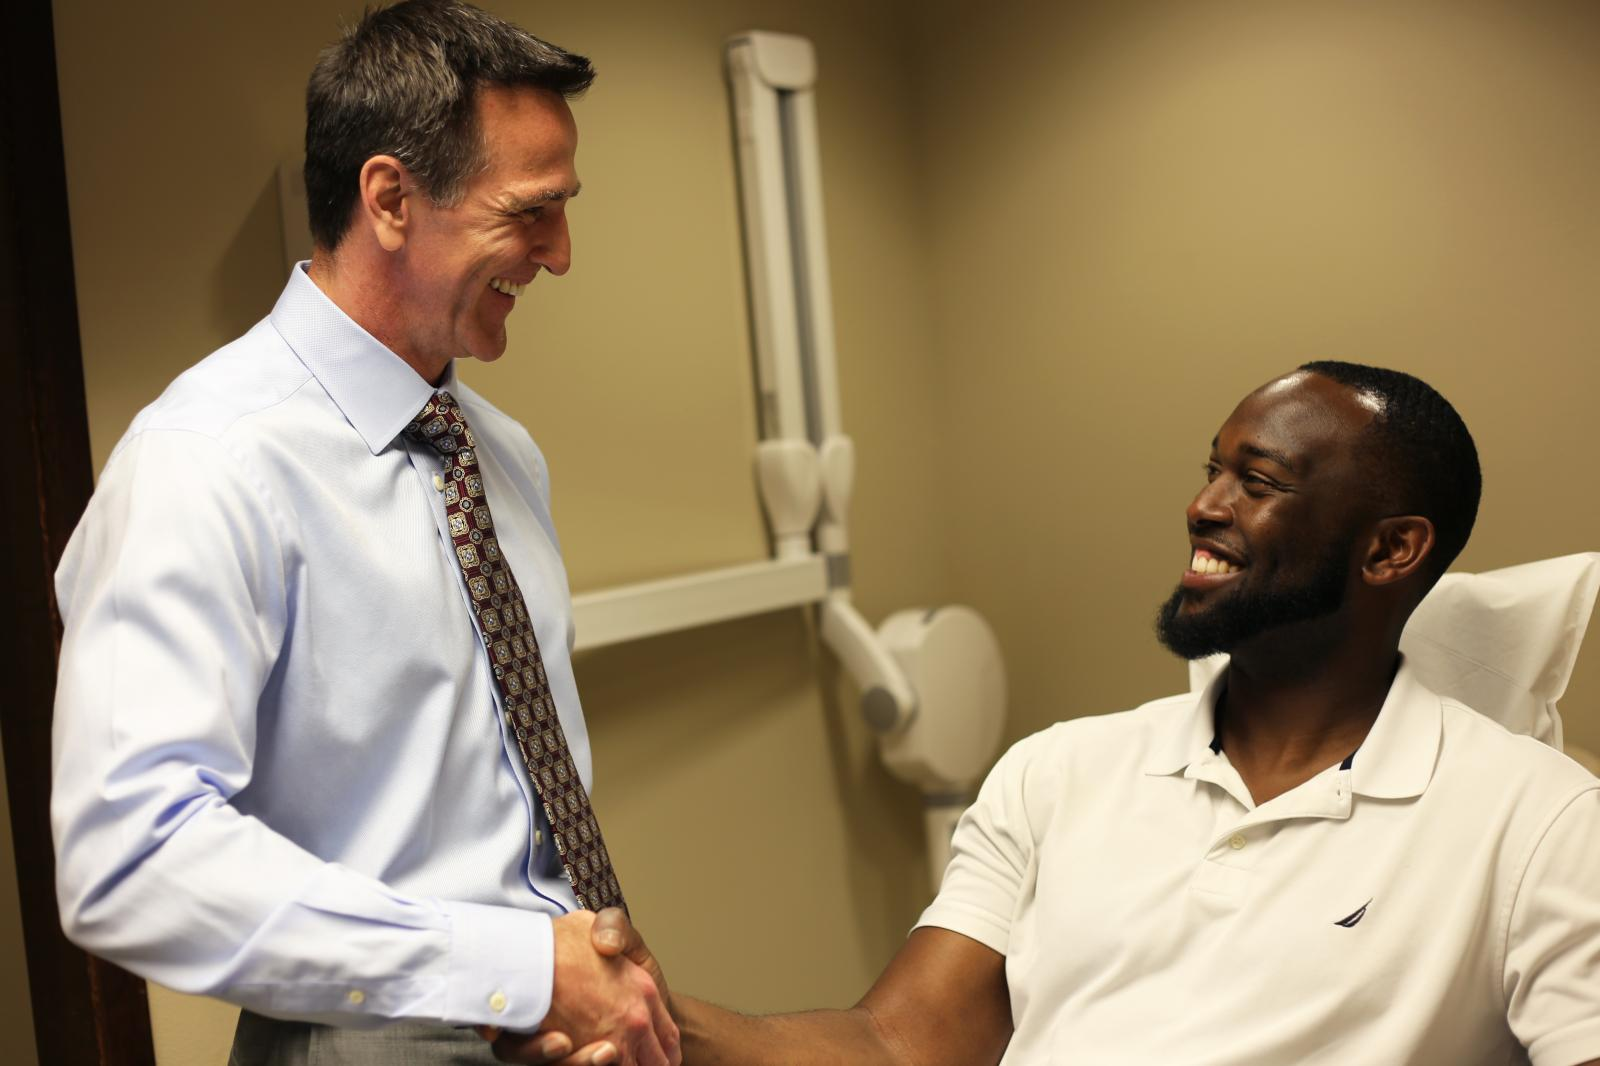 Man shaking orthodontists hand